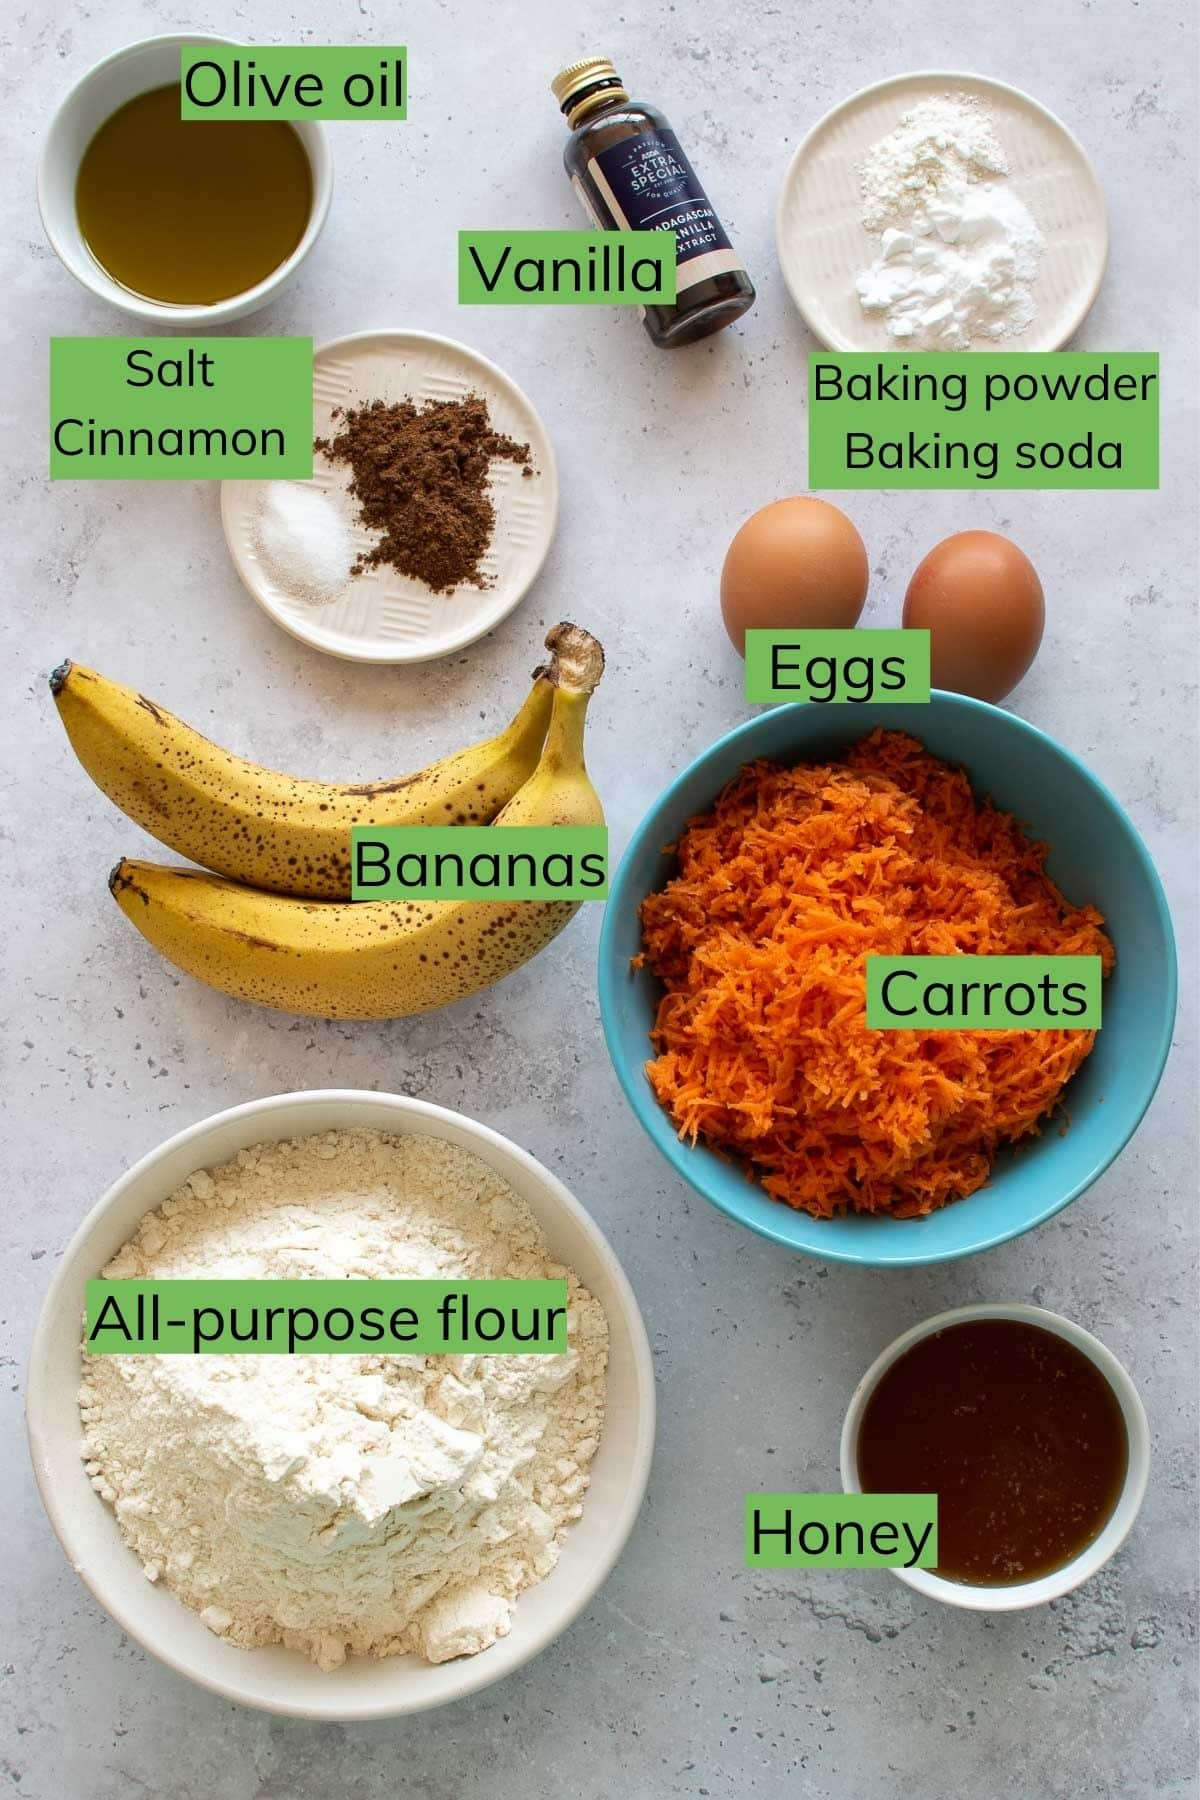 Banana and shredded carrot muffin ingredients.